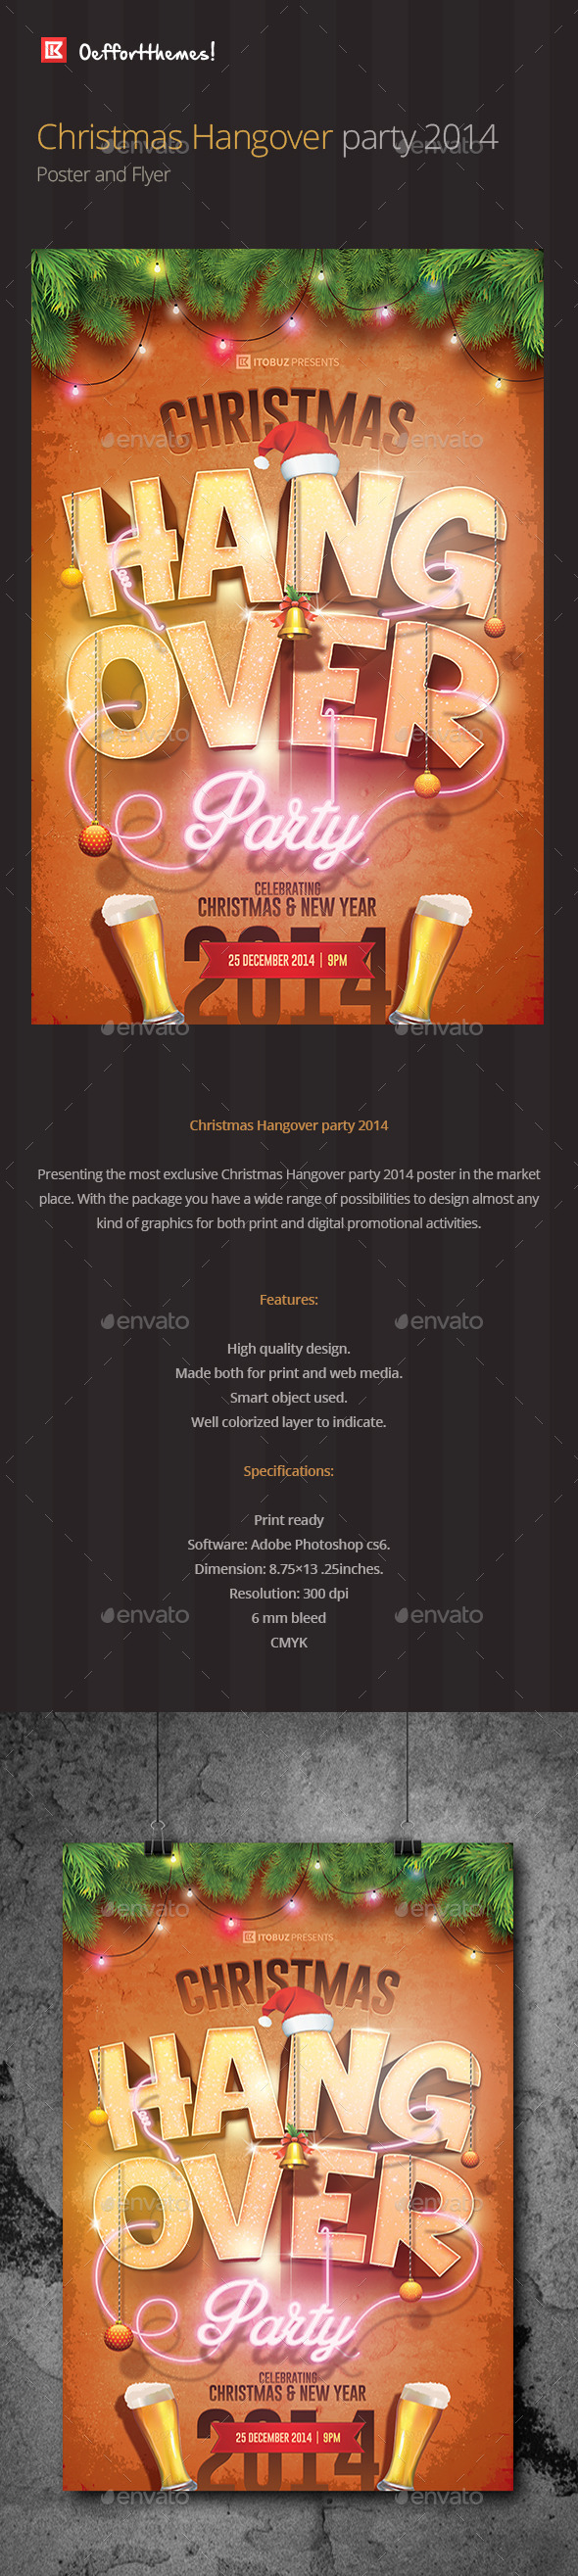 GraphicRiver Christmas Hangover Party Poster and Flyer 9656756